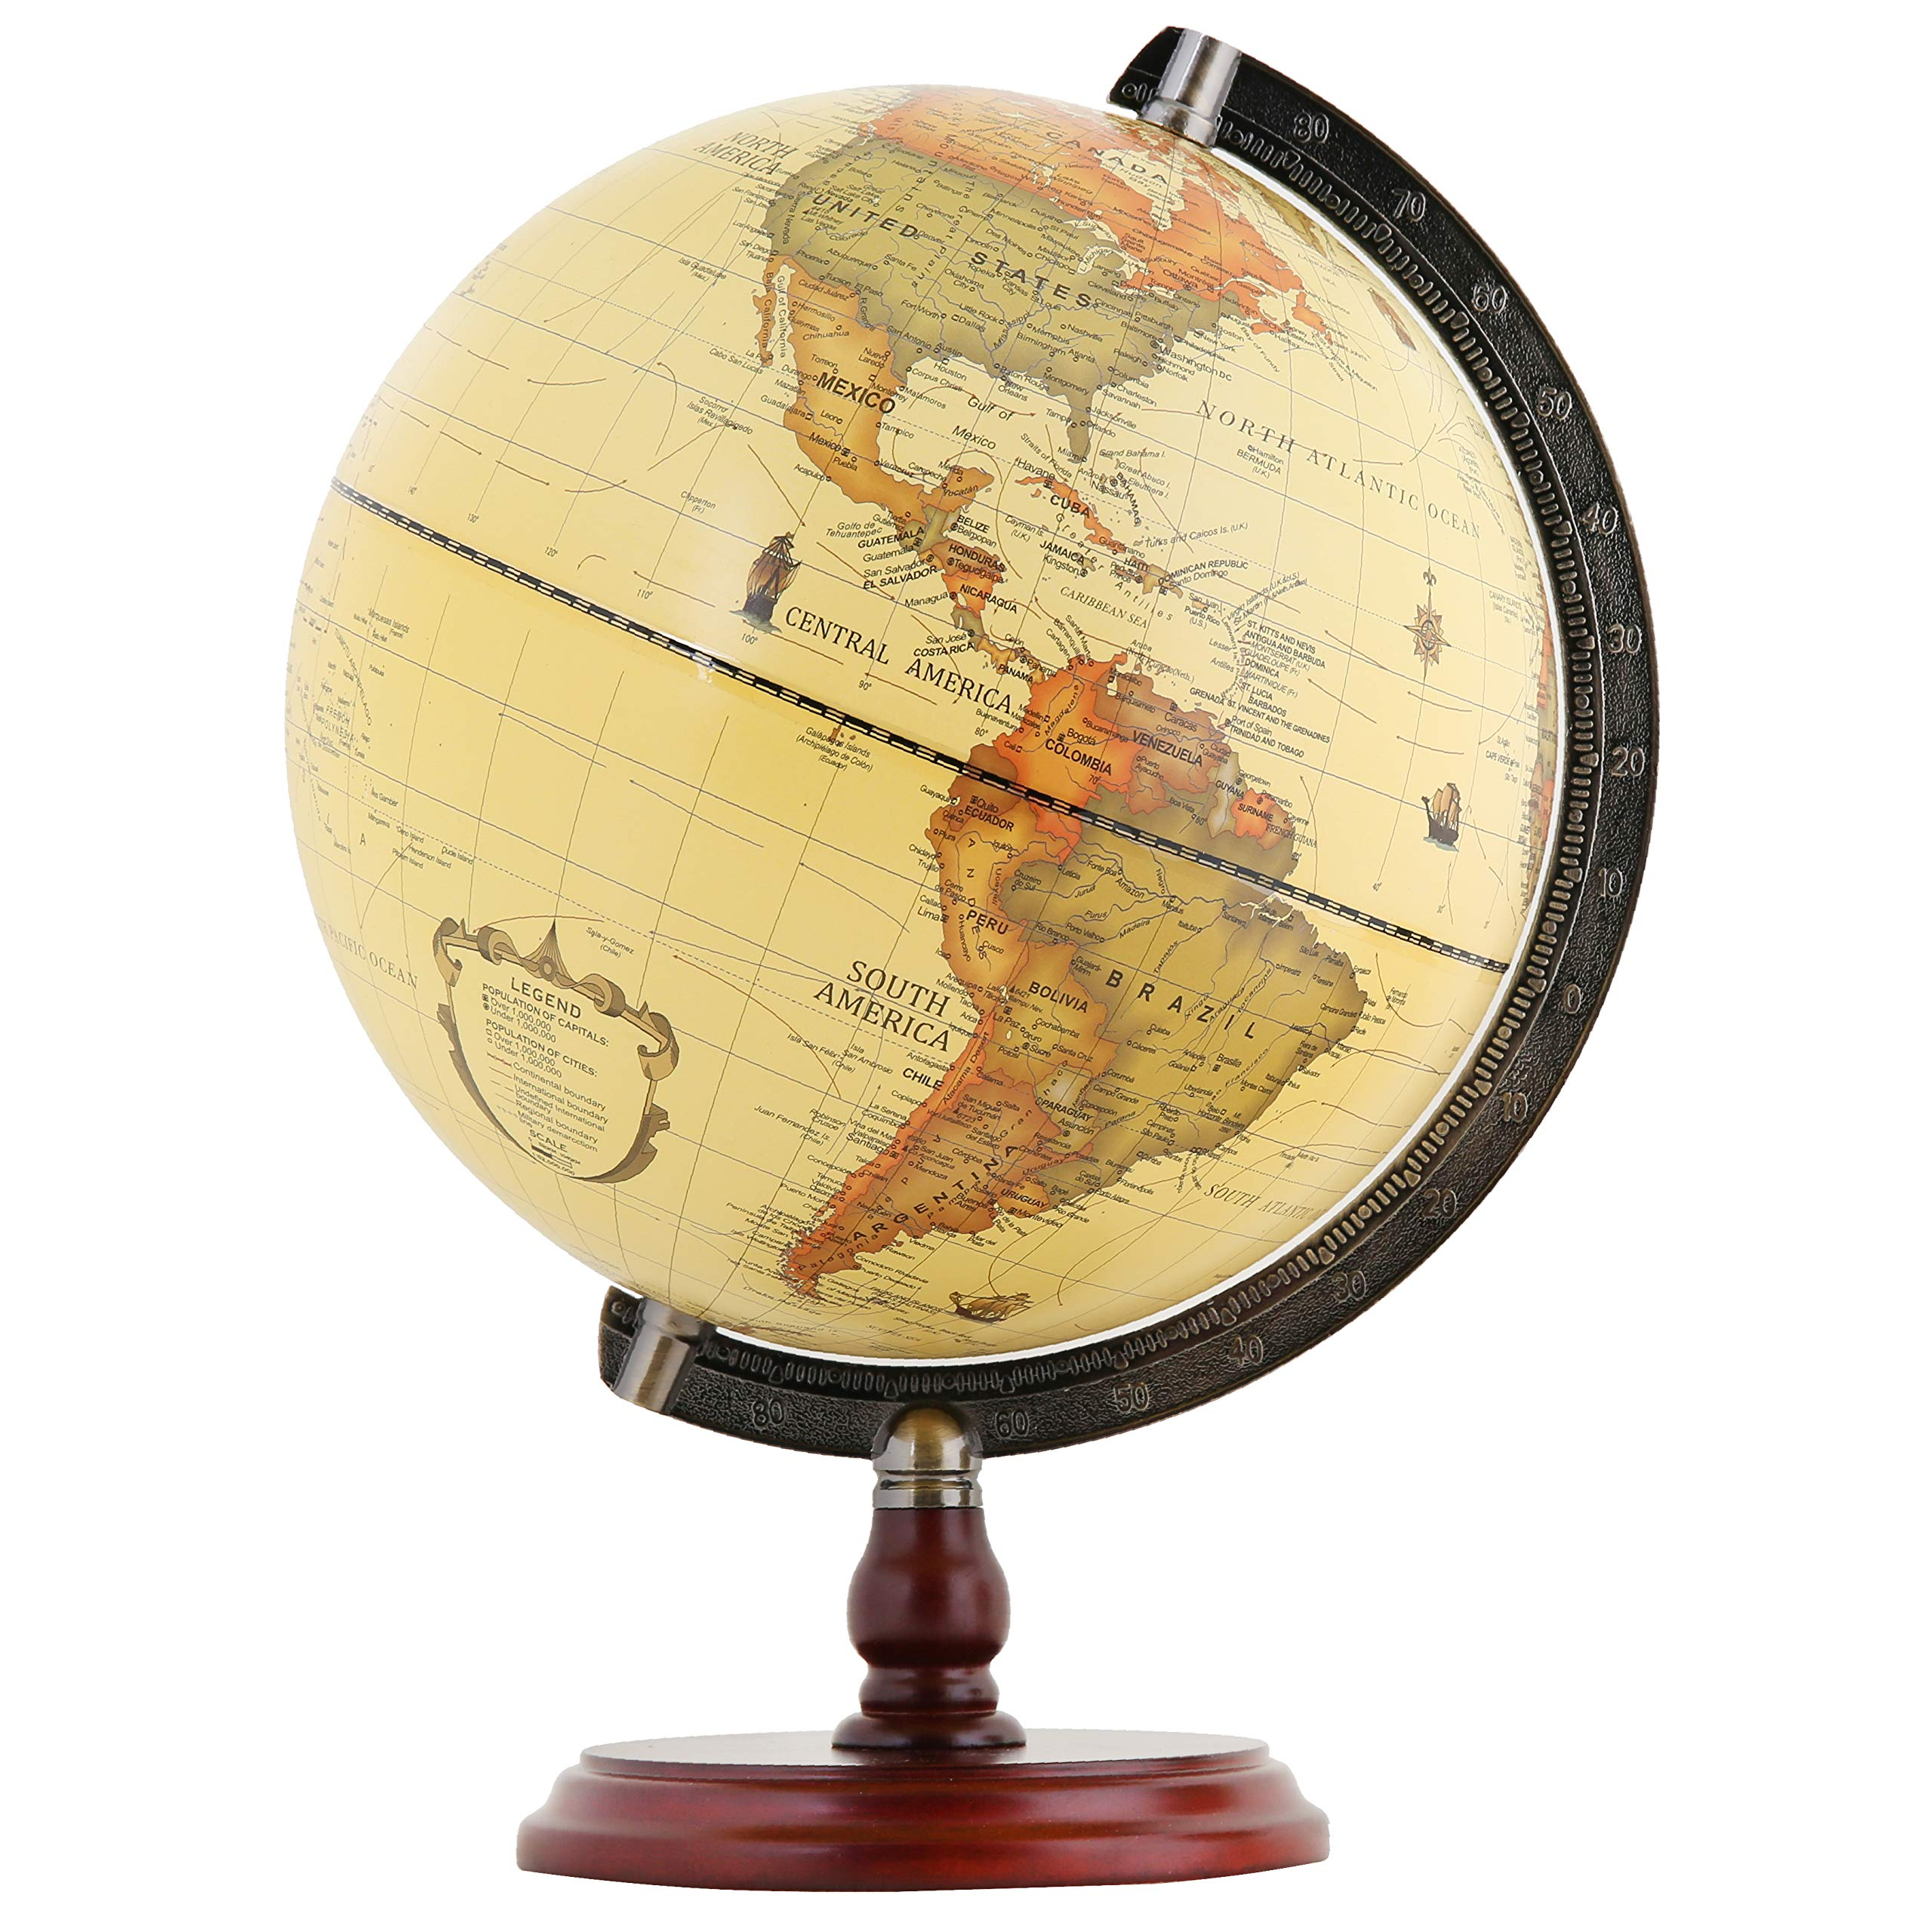 Exerz Antique Globe 10'' / 25 cm Diameter with A Wood Base, Vintage Decorative Political Desktop World - Rotating Full Earth Geography Educational - for Kids, Adults, School, Home, Office (Dia 10-inch)